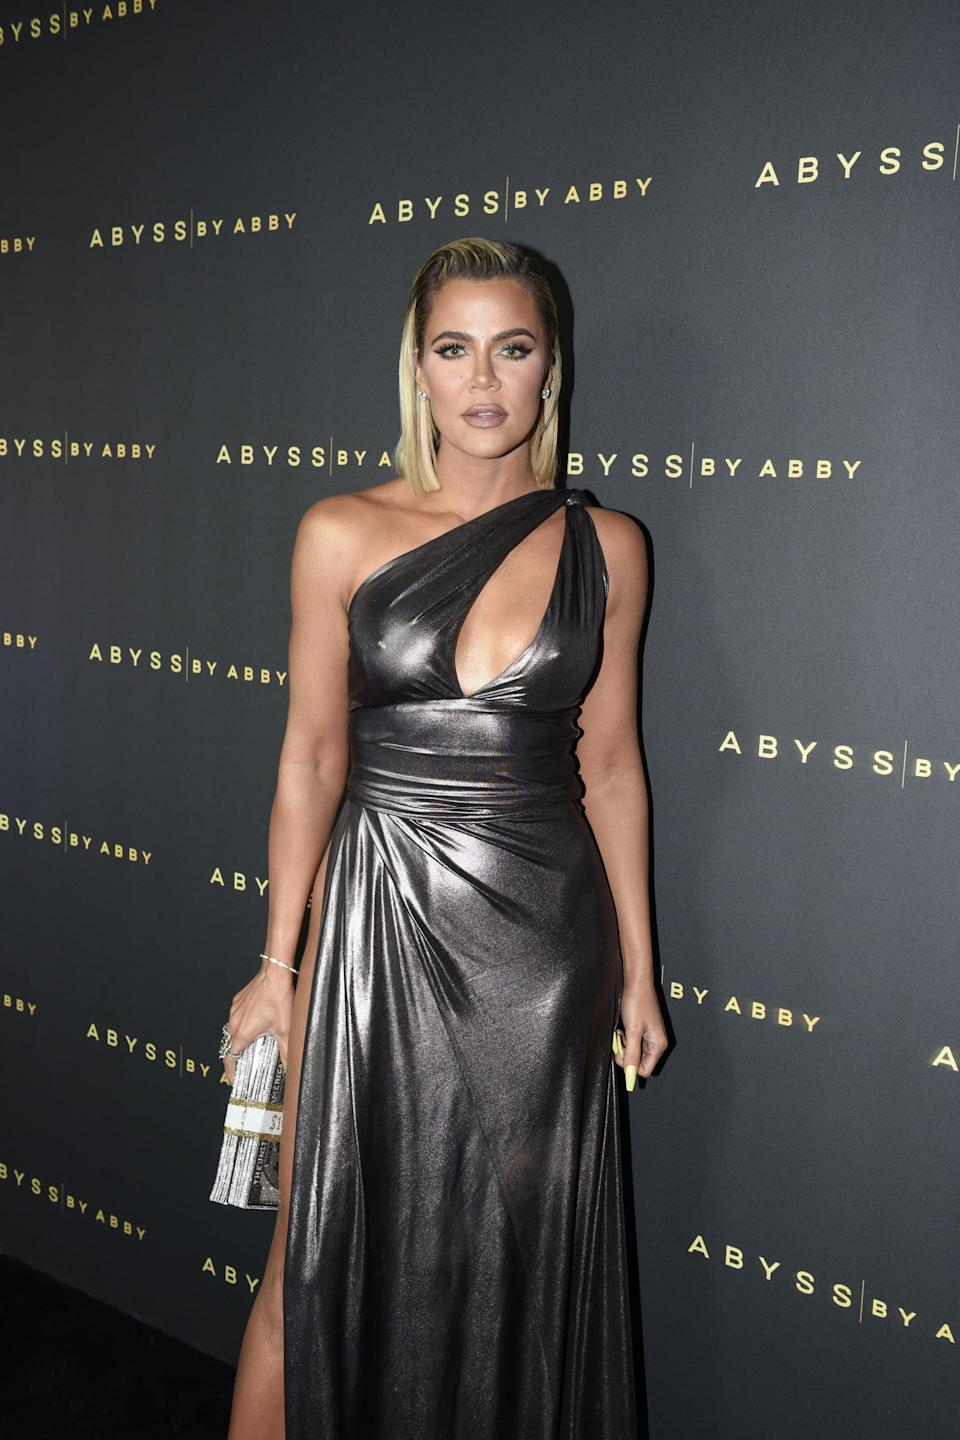 """<p>After years of speculation and <a href=""""https://www.popsugar.com/beauty/khloe-kardashian-body-photoshop-statement-48259268"""" class=""""link rapid-noclick-resp"""" rel=""""nofollow noopener"""" target=""""_blank"""" data-ylk=""""slk:scrutiny from fans"""">scrutiny from fans</a> about whether or not she'd gone under the knife in her career, Kardashian opened up about the plastic surgery she's had during the <strong>Keeping Up With the Kardashians</strong> reunion, which aired after the show's series finale. In part two of the reunion, host Andy Cohen decided to let Kardashian address the rumors while asking the siblings a series of different questions.</p> <p>""""Everyone says, 'Oh my gosh, she's had her third face transplant.' I've had one nose job,"""" she said before explaining that, even after all the interviews she's done, Cohen was the first person to ask about it. </p> <p>""""Everyone gets so upset, like, why don't I talk about it?"""" she said. """"No one's ever asked me. You're the first person that's ever asked me in an interview about my nose.""""</p>"""